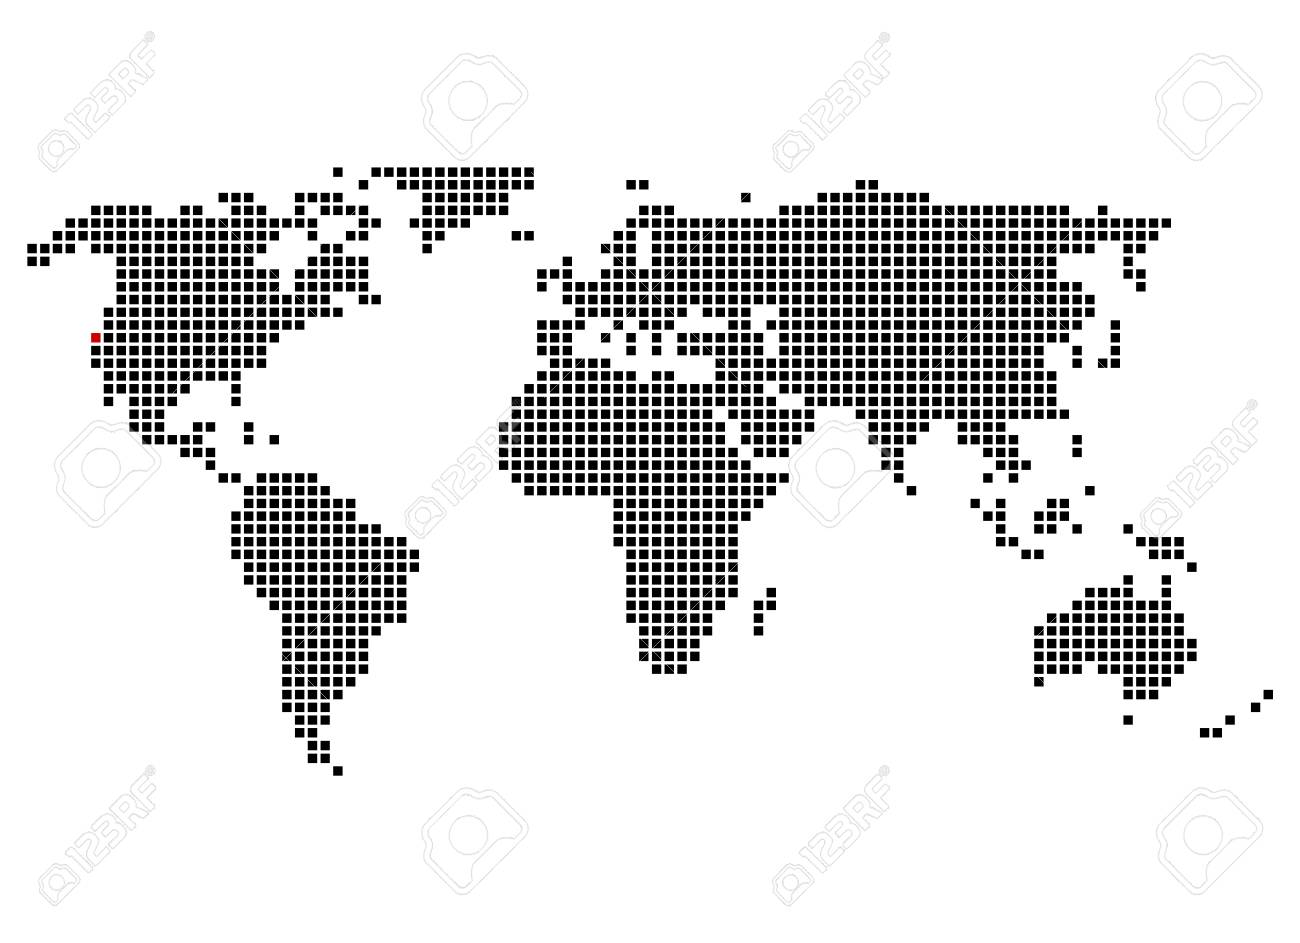 World map with position of San Francisco on mykonos on world map, hue on world map, fremont on world map, kano on world map, gdansk on world map, babylon city on world map, altamira on world map, kauai hawaii on world map, chicago on world map, montreal on world map, longyearbyen on world map, mexico city on world map, buenos on world map, new york on world map, charles town on world map, tokyo on world map, california on world map, disneyland on world map, canberra on world map, sanaa on world map,